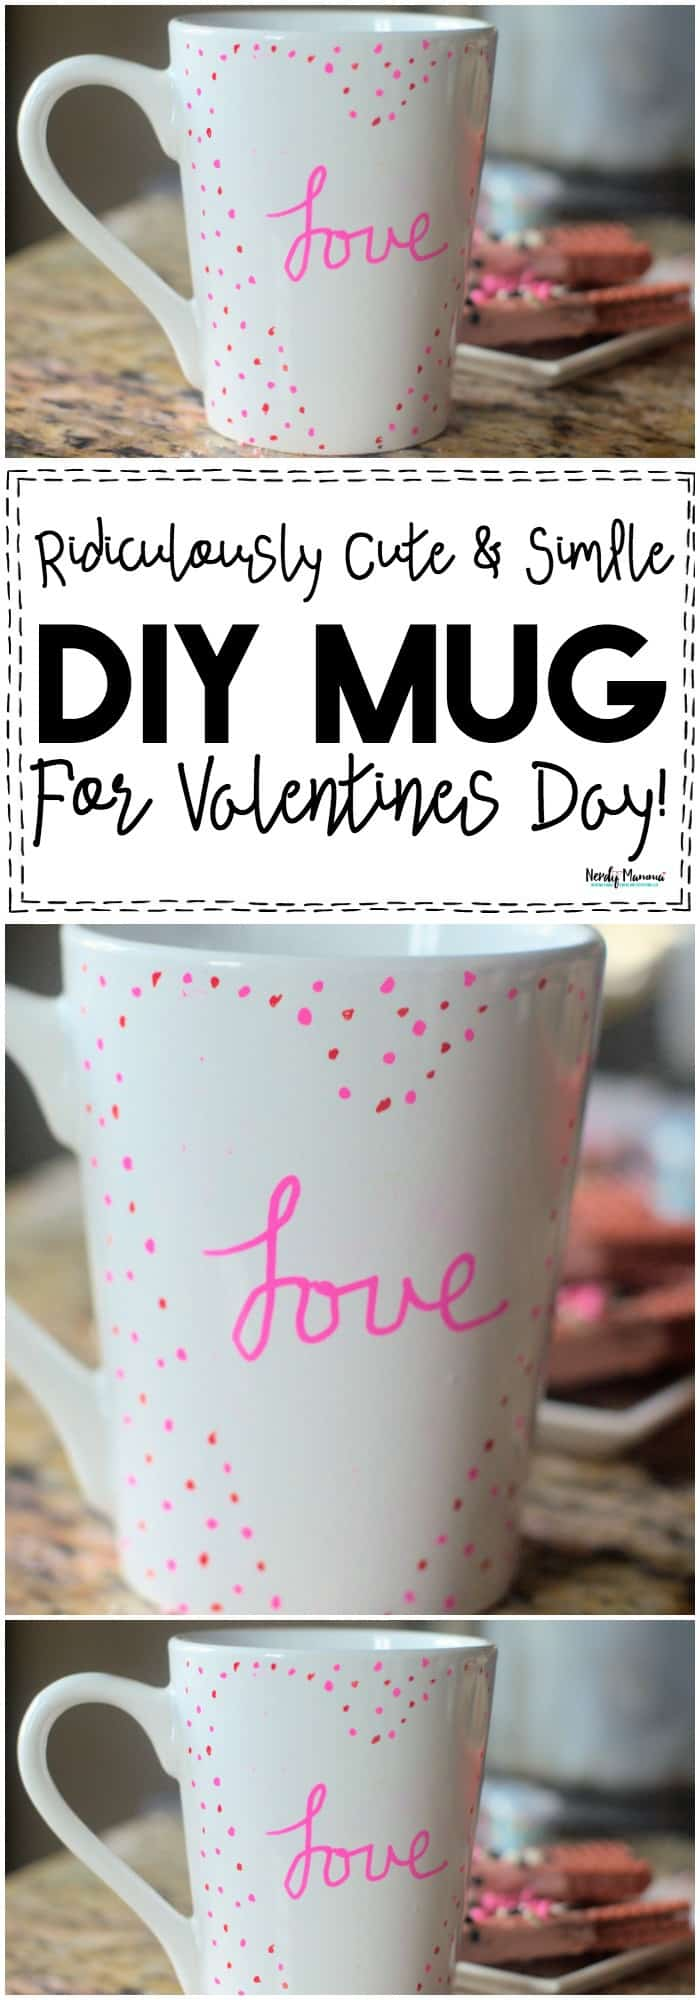 OMG... You've GOT to make this ridiculously cute & simple DIY Mug for Valentine's Day! It's ADORBS and takes like NO time! #ValentinesDay #valentines #valentine #DIYmug #DIYproject #EasyCraft